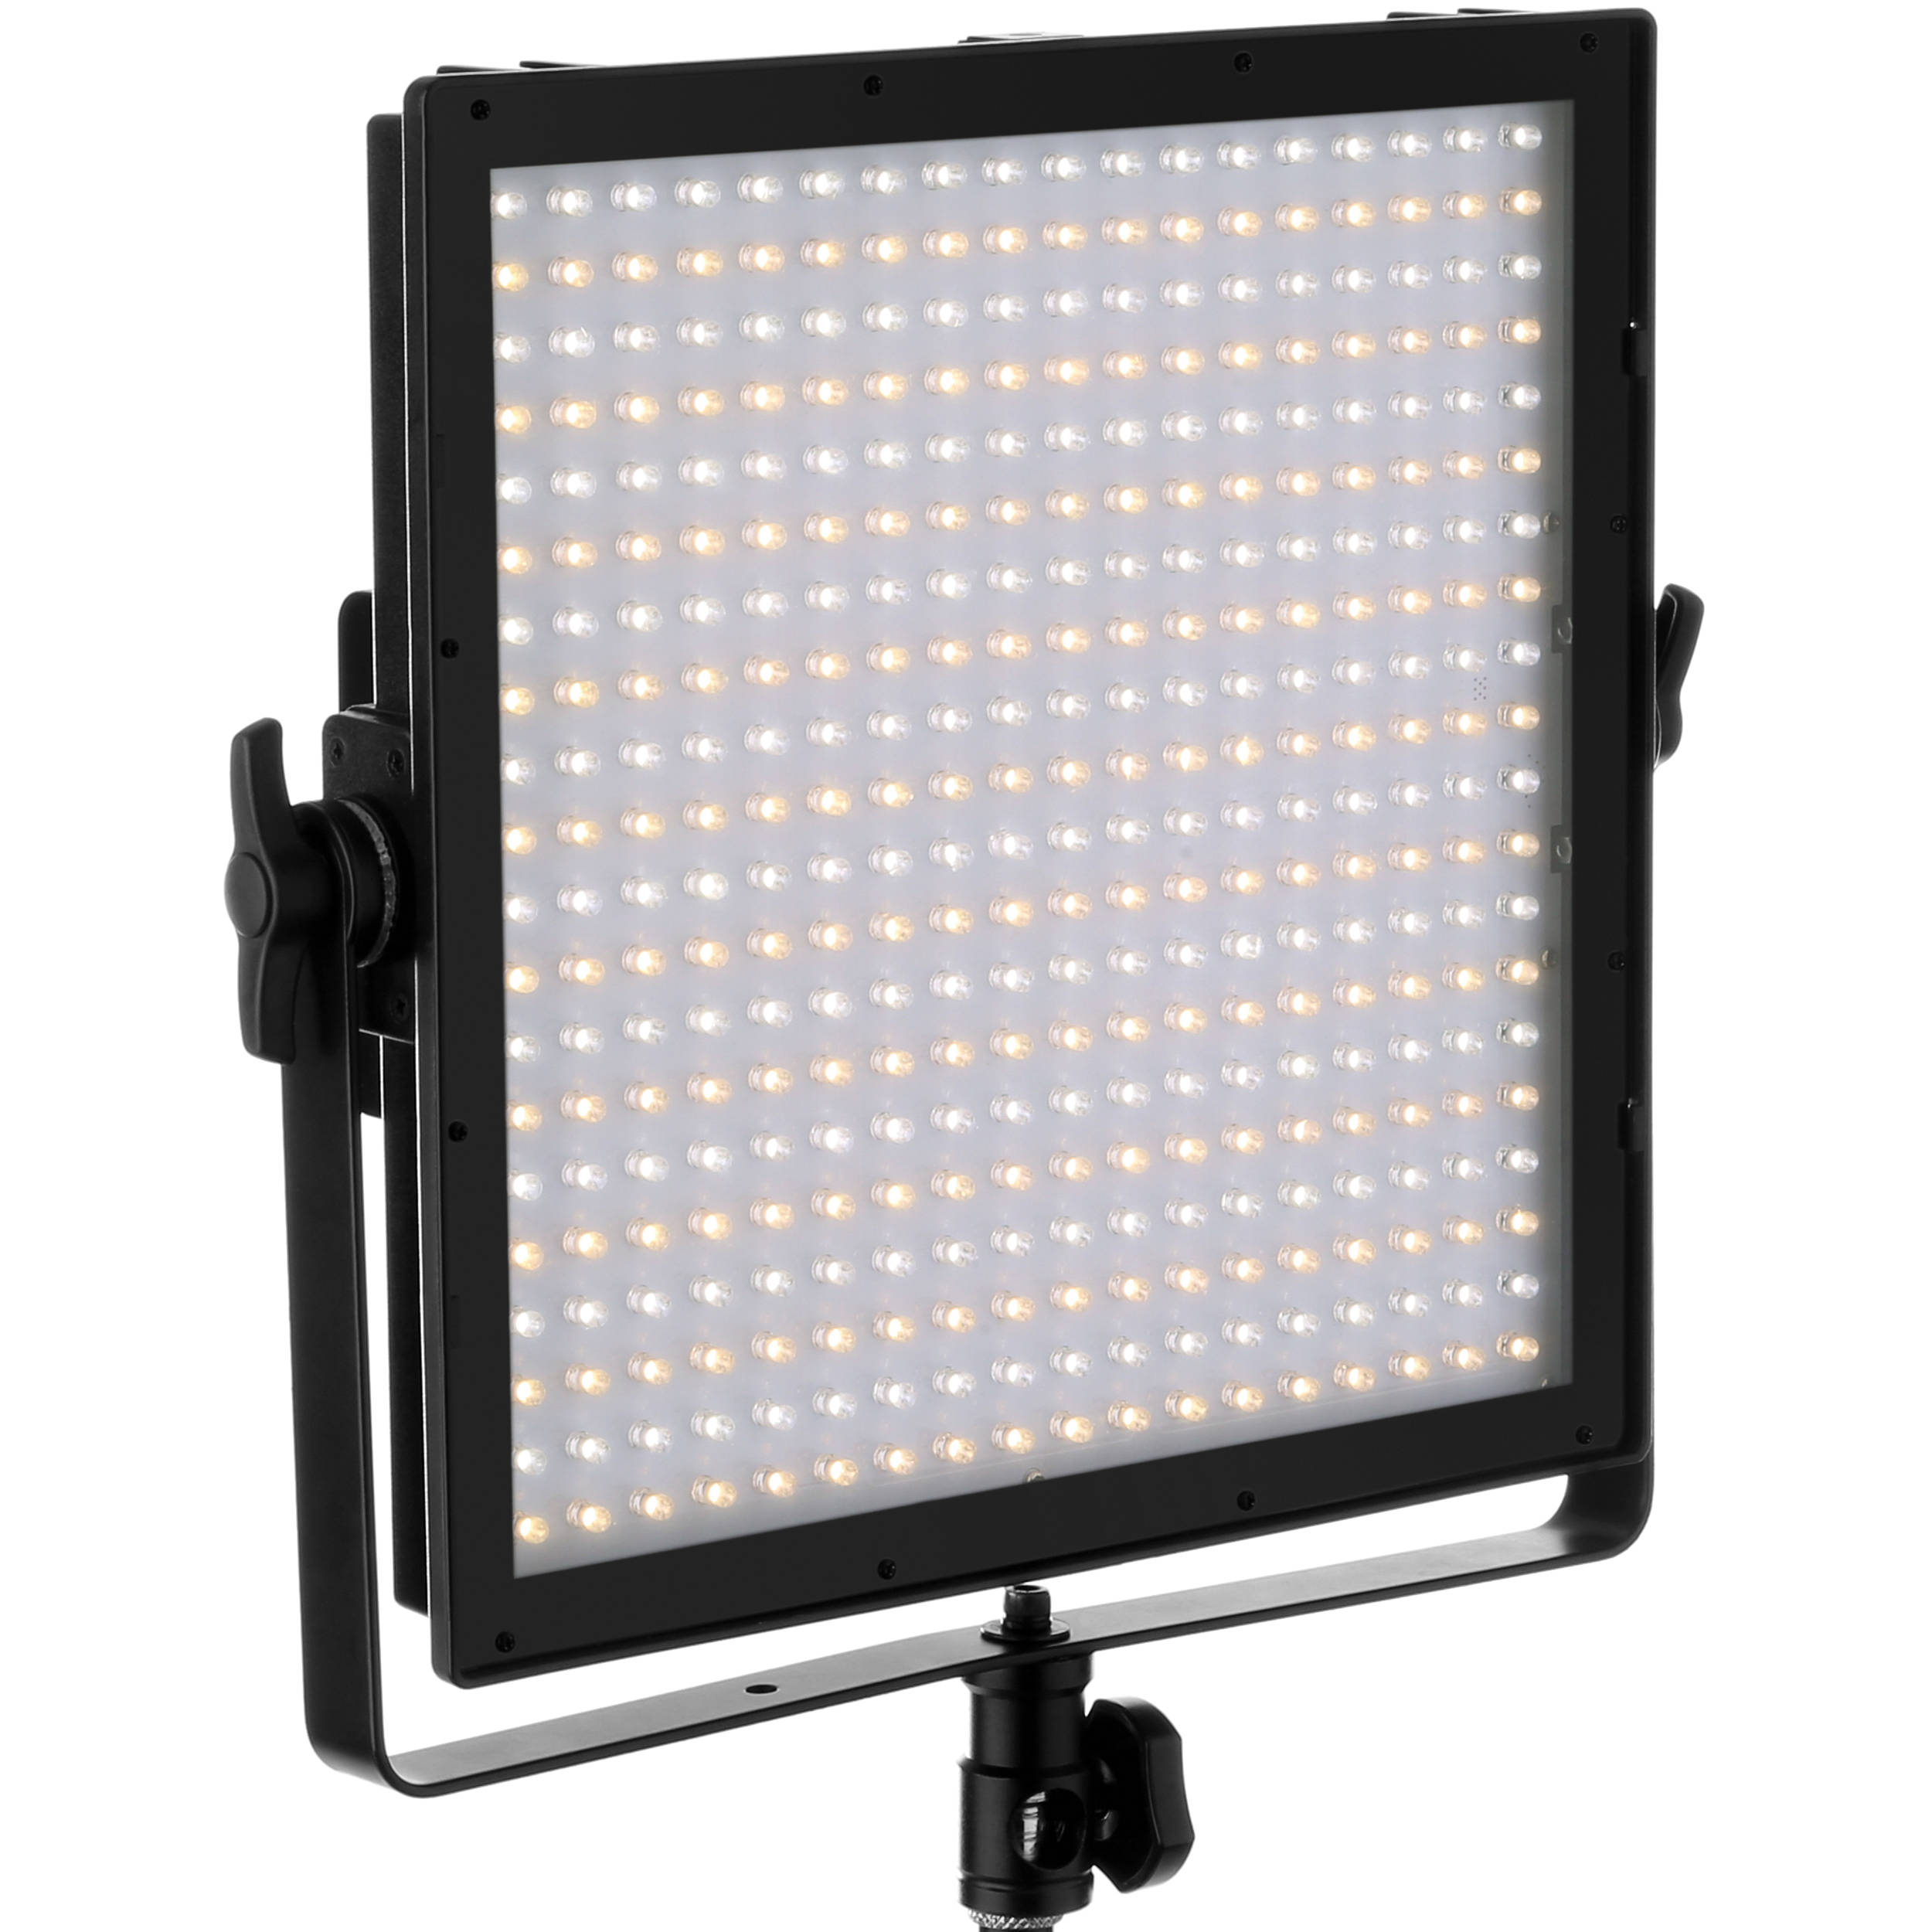 Led Studio Light Repair: Genaray SpectroLED Essential 360 Bi-Color LED Light SP-E-360B